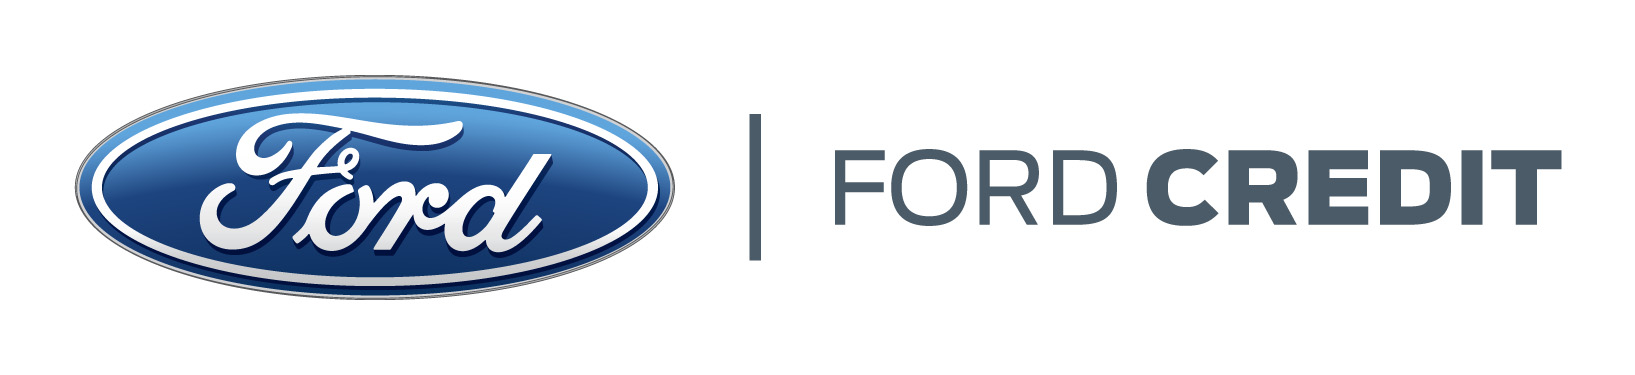 Ford-Credit-Logo.jpg